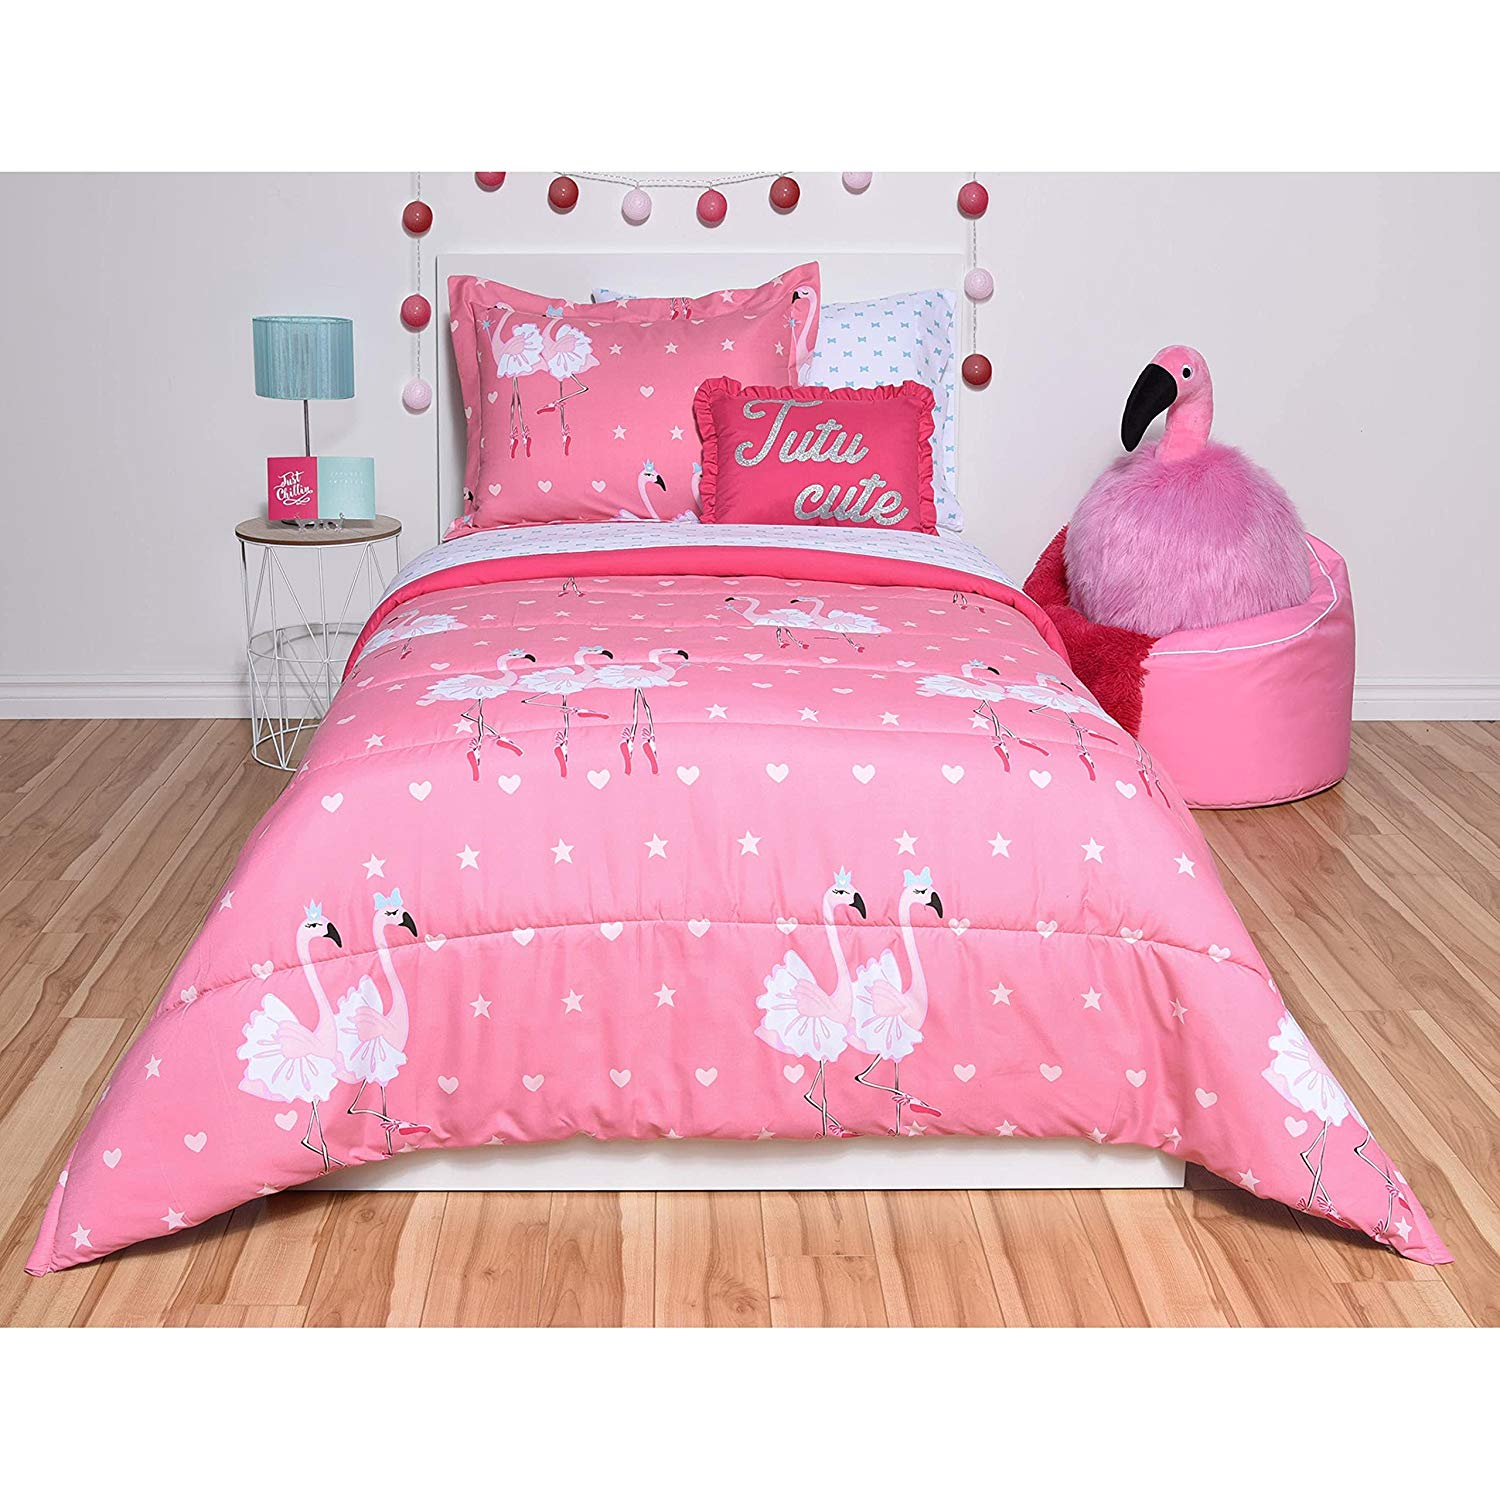 5 Piece Pink Flamingo Theme Comforter Twin Set, Beautiful Cute Dancing Flamingos with Frilly White Tutus & Ballet Shoes, Boho Chic Hearts & Stars Print Background, Plush Microfiber, For Girls/Teens